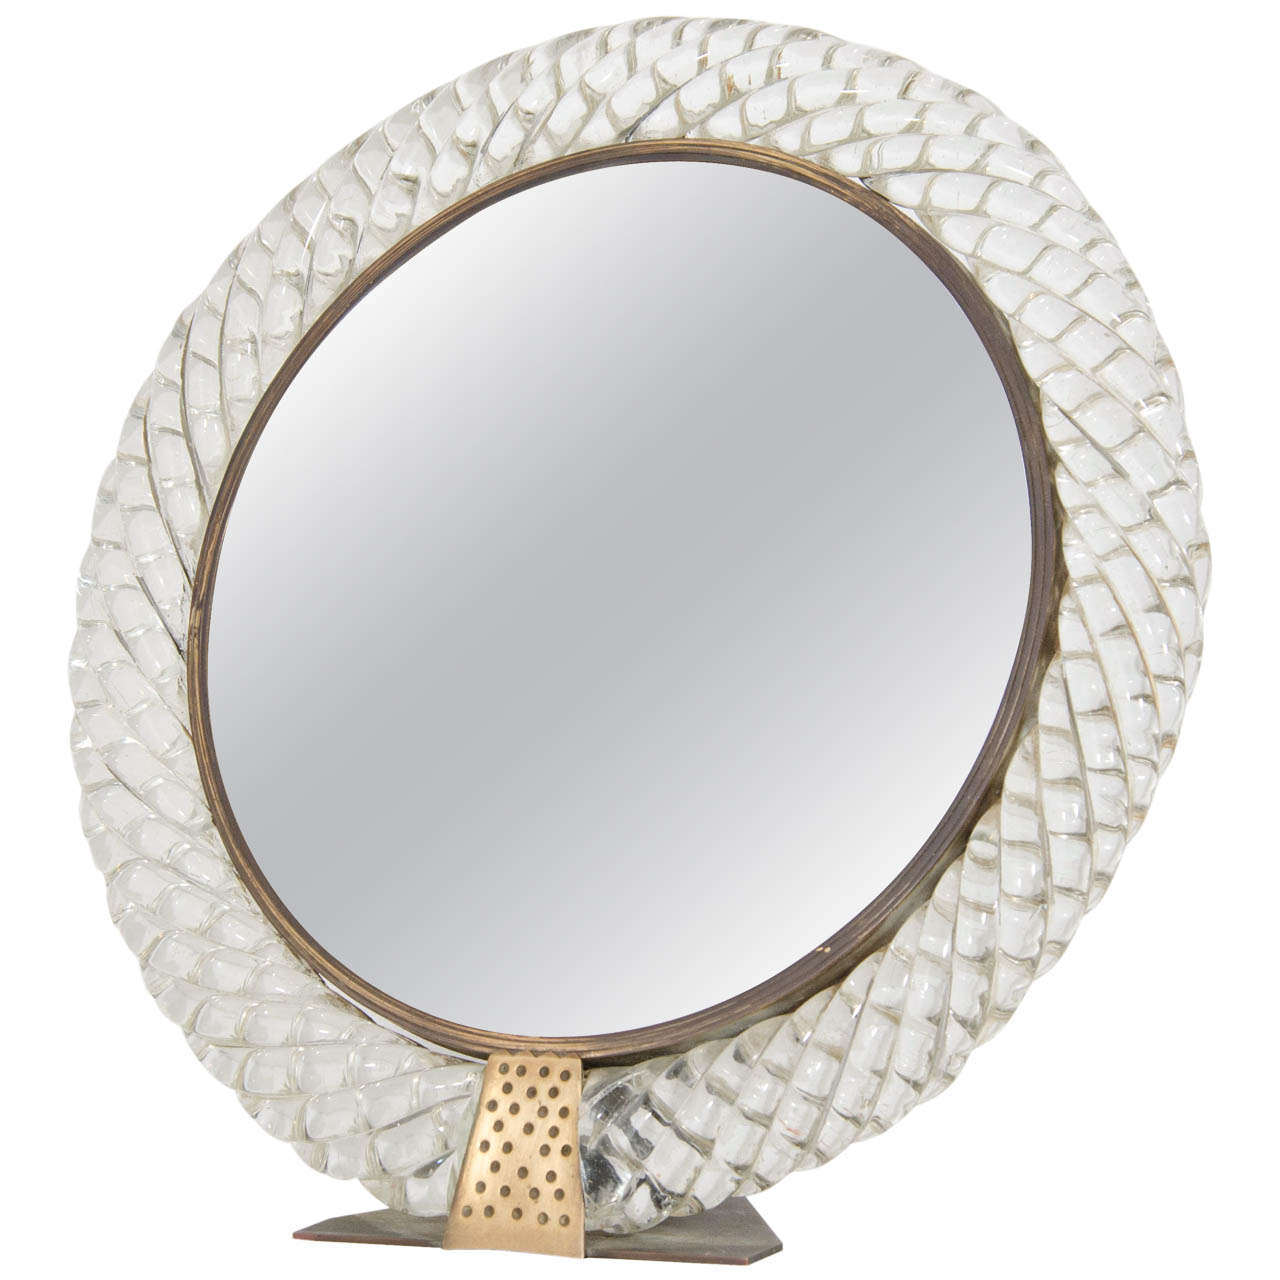 A Mid Century Venini Vanity Or Table Top Mirror For Sale